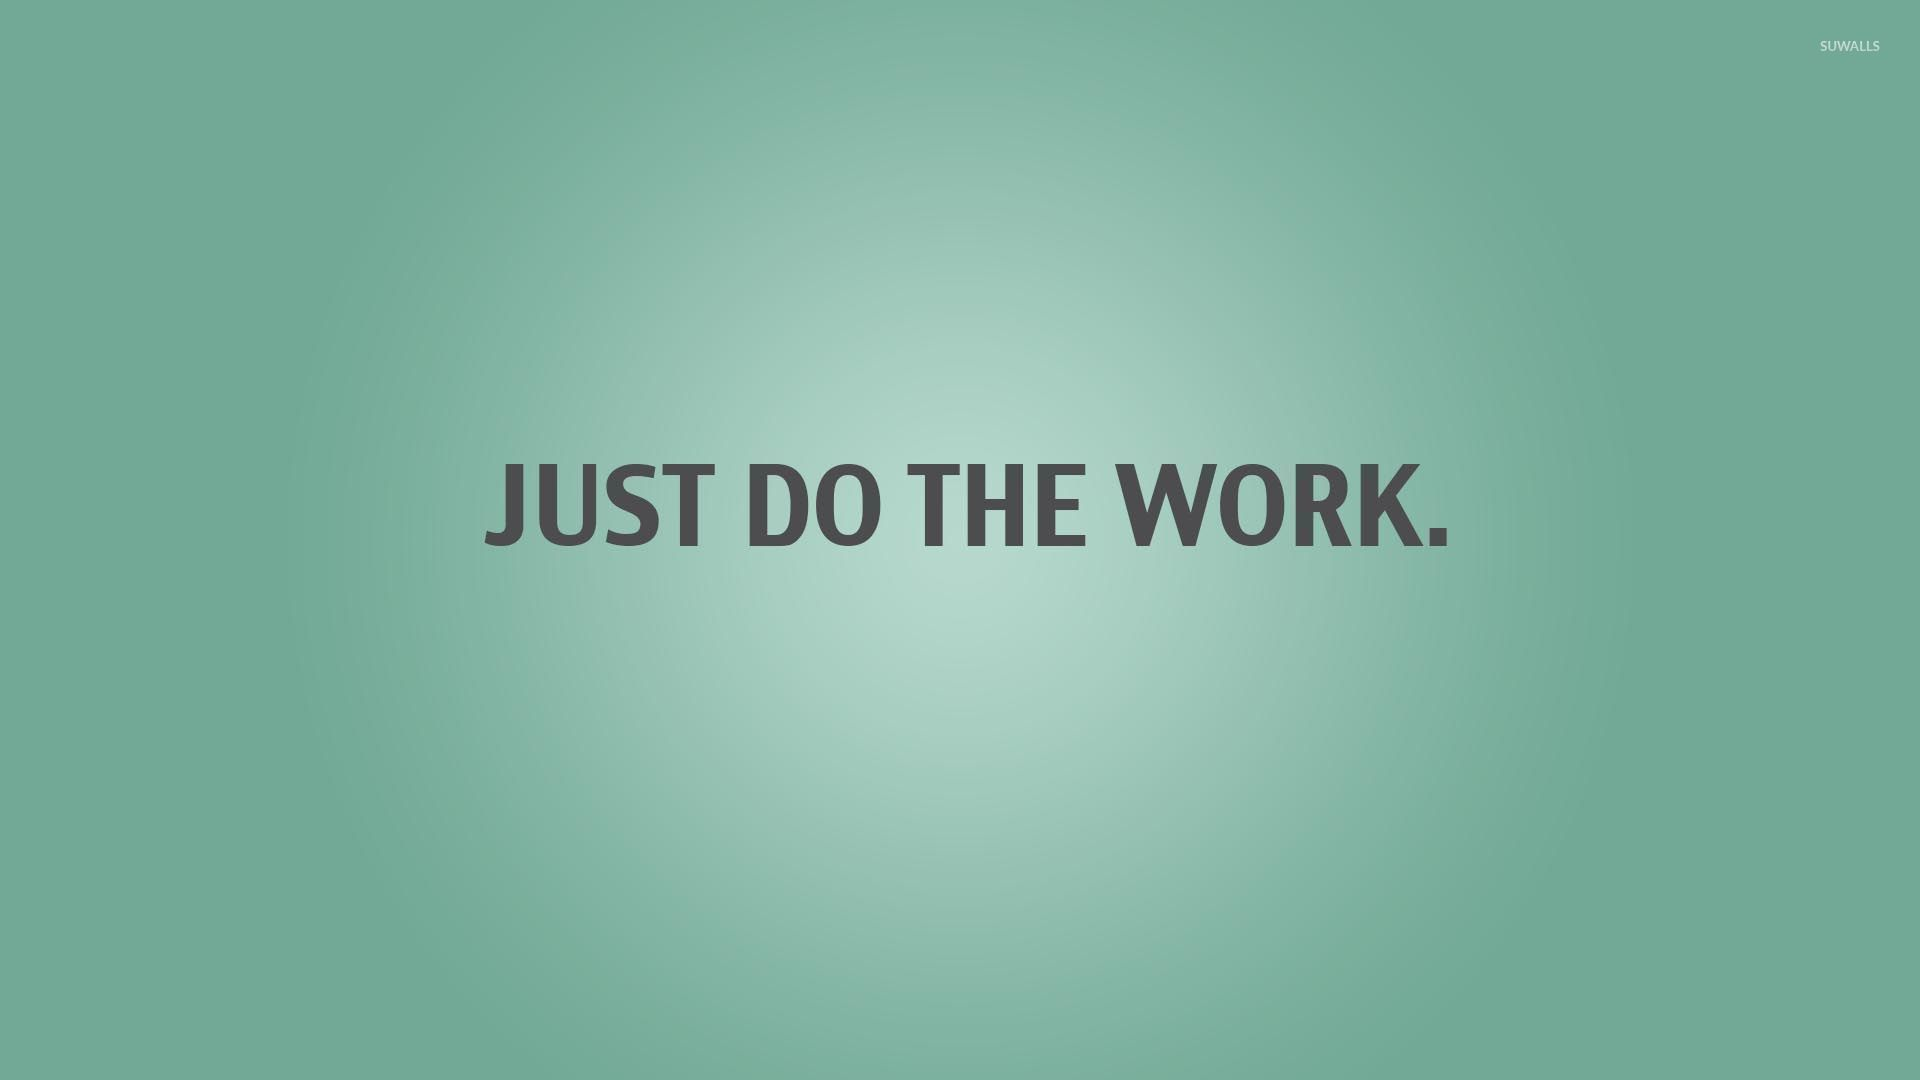 Just do the work wallpaper typography wallpapers 26494 just do the work wallpaper altavistaventures Image collections